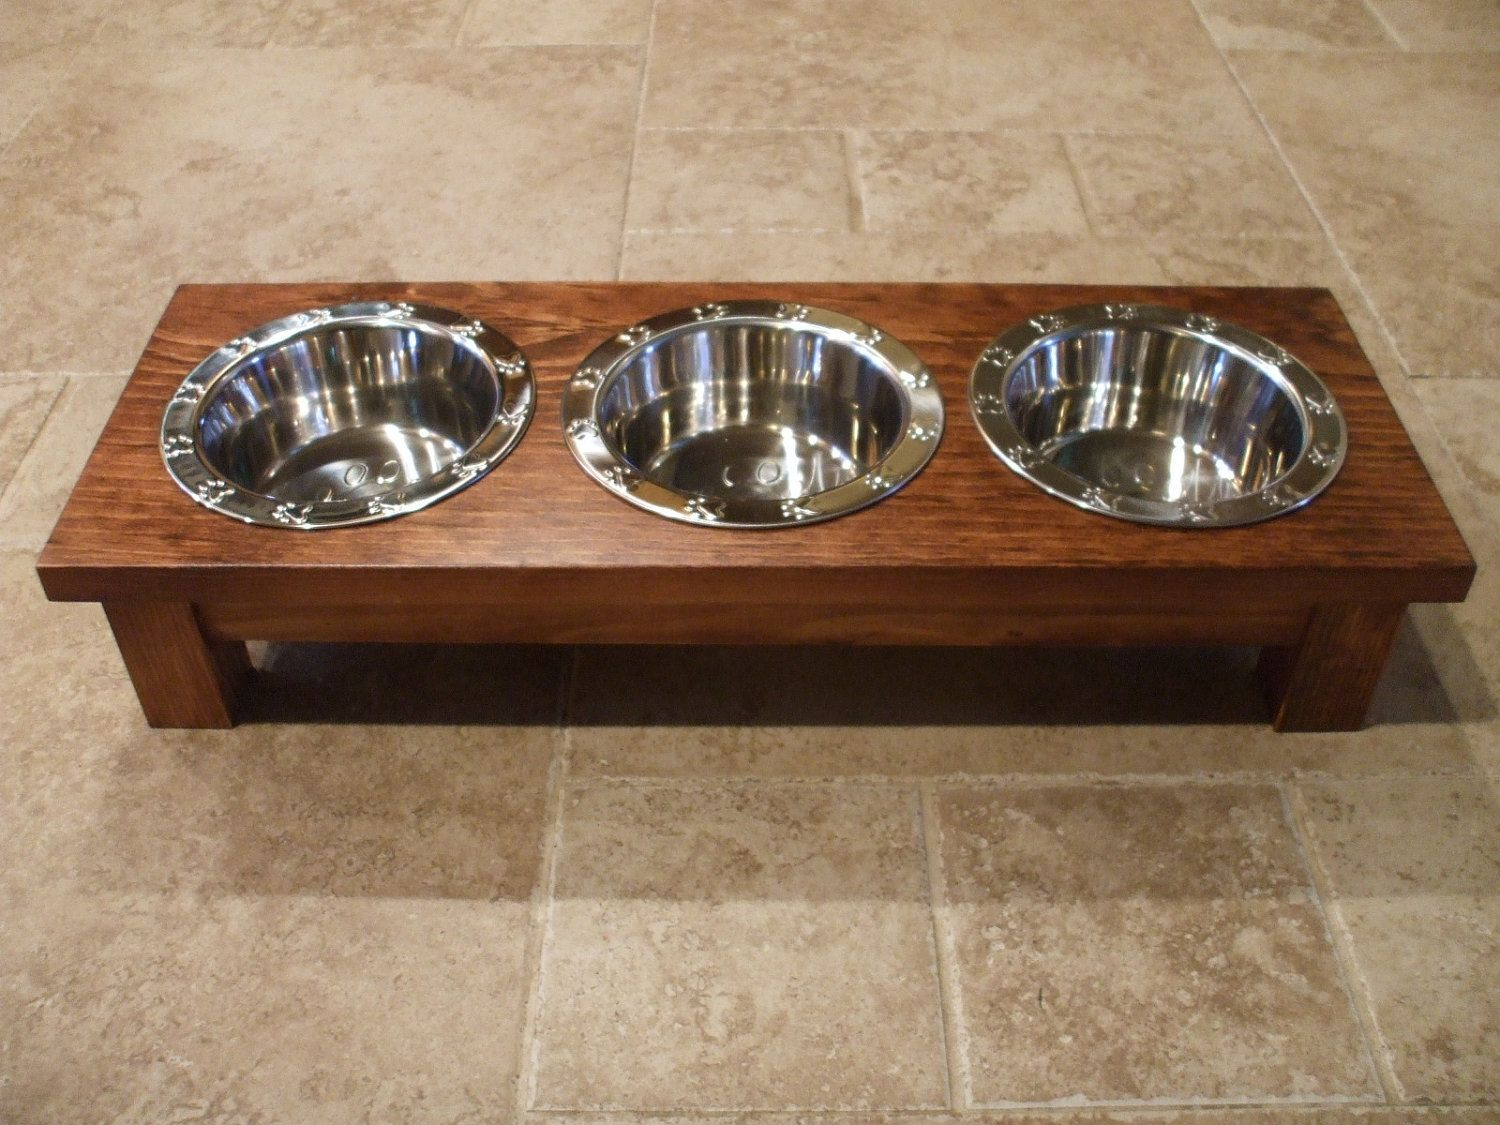 elevated wooden and freestanding promotes the bowls pet is feeder fabian stand wenge bowl woodworks mm dog water cat raised food tall